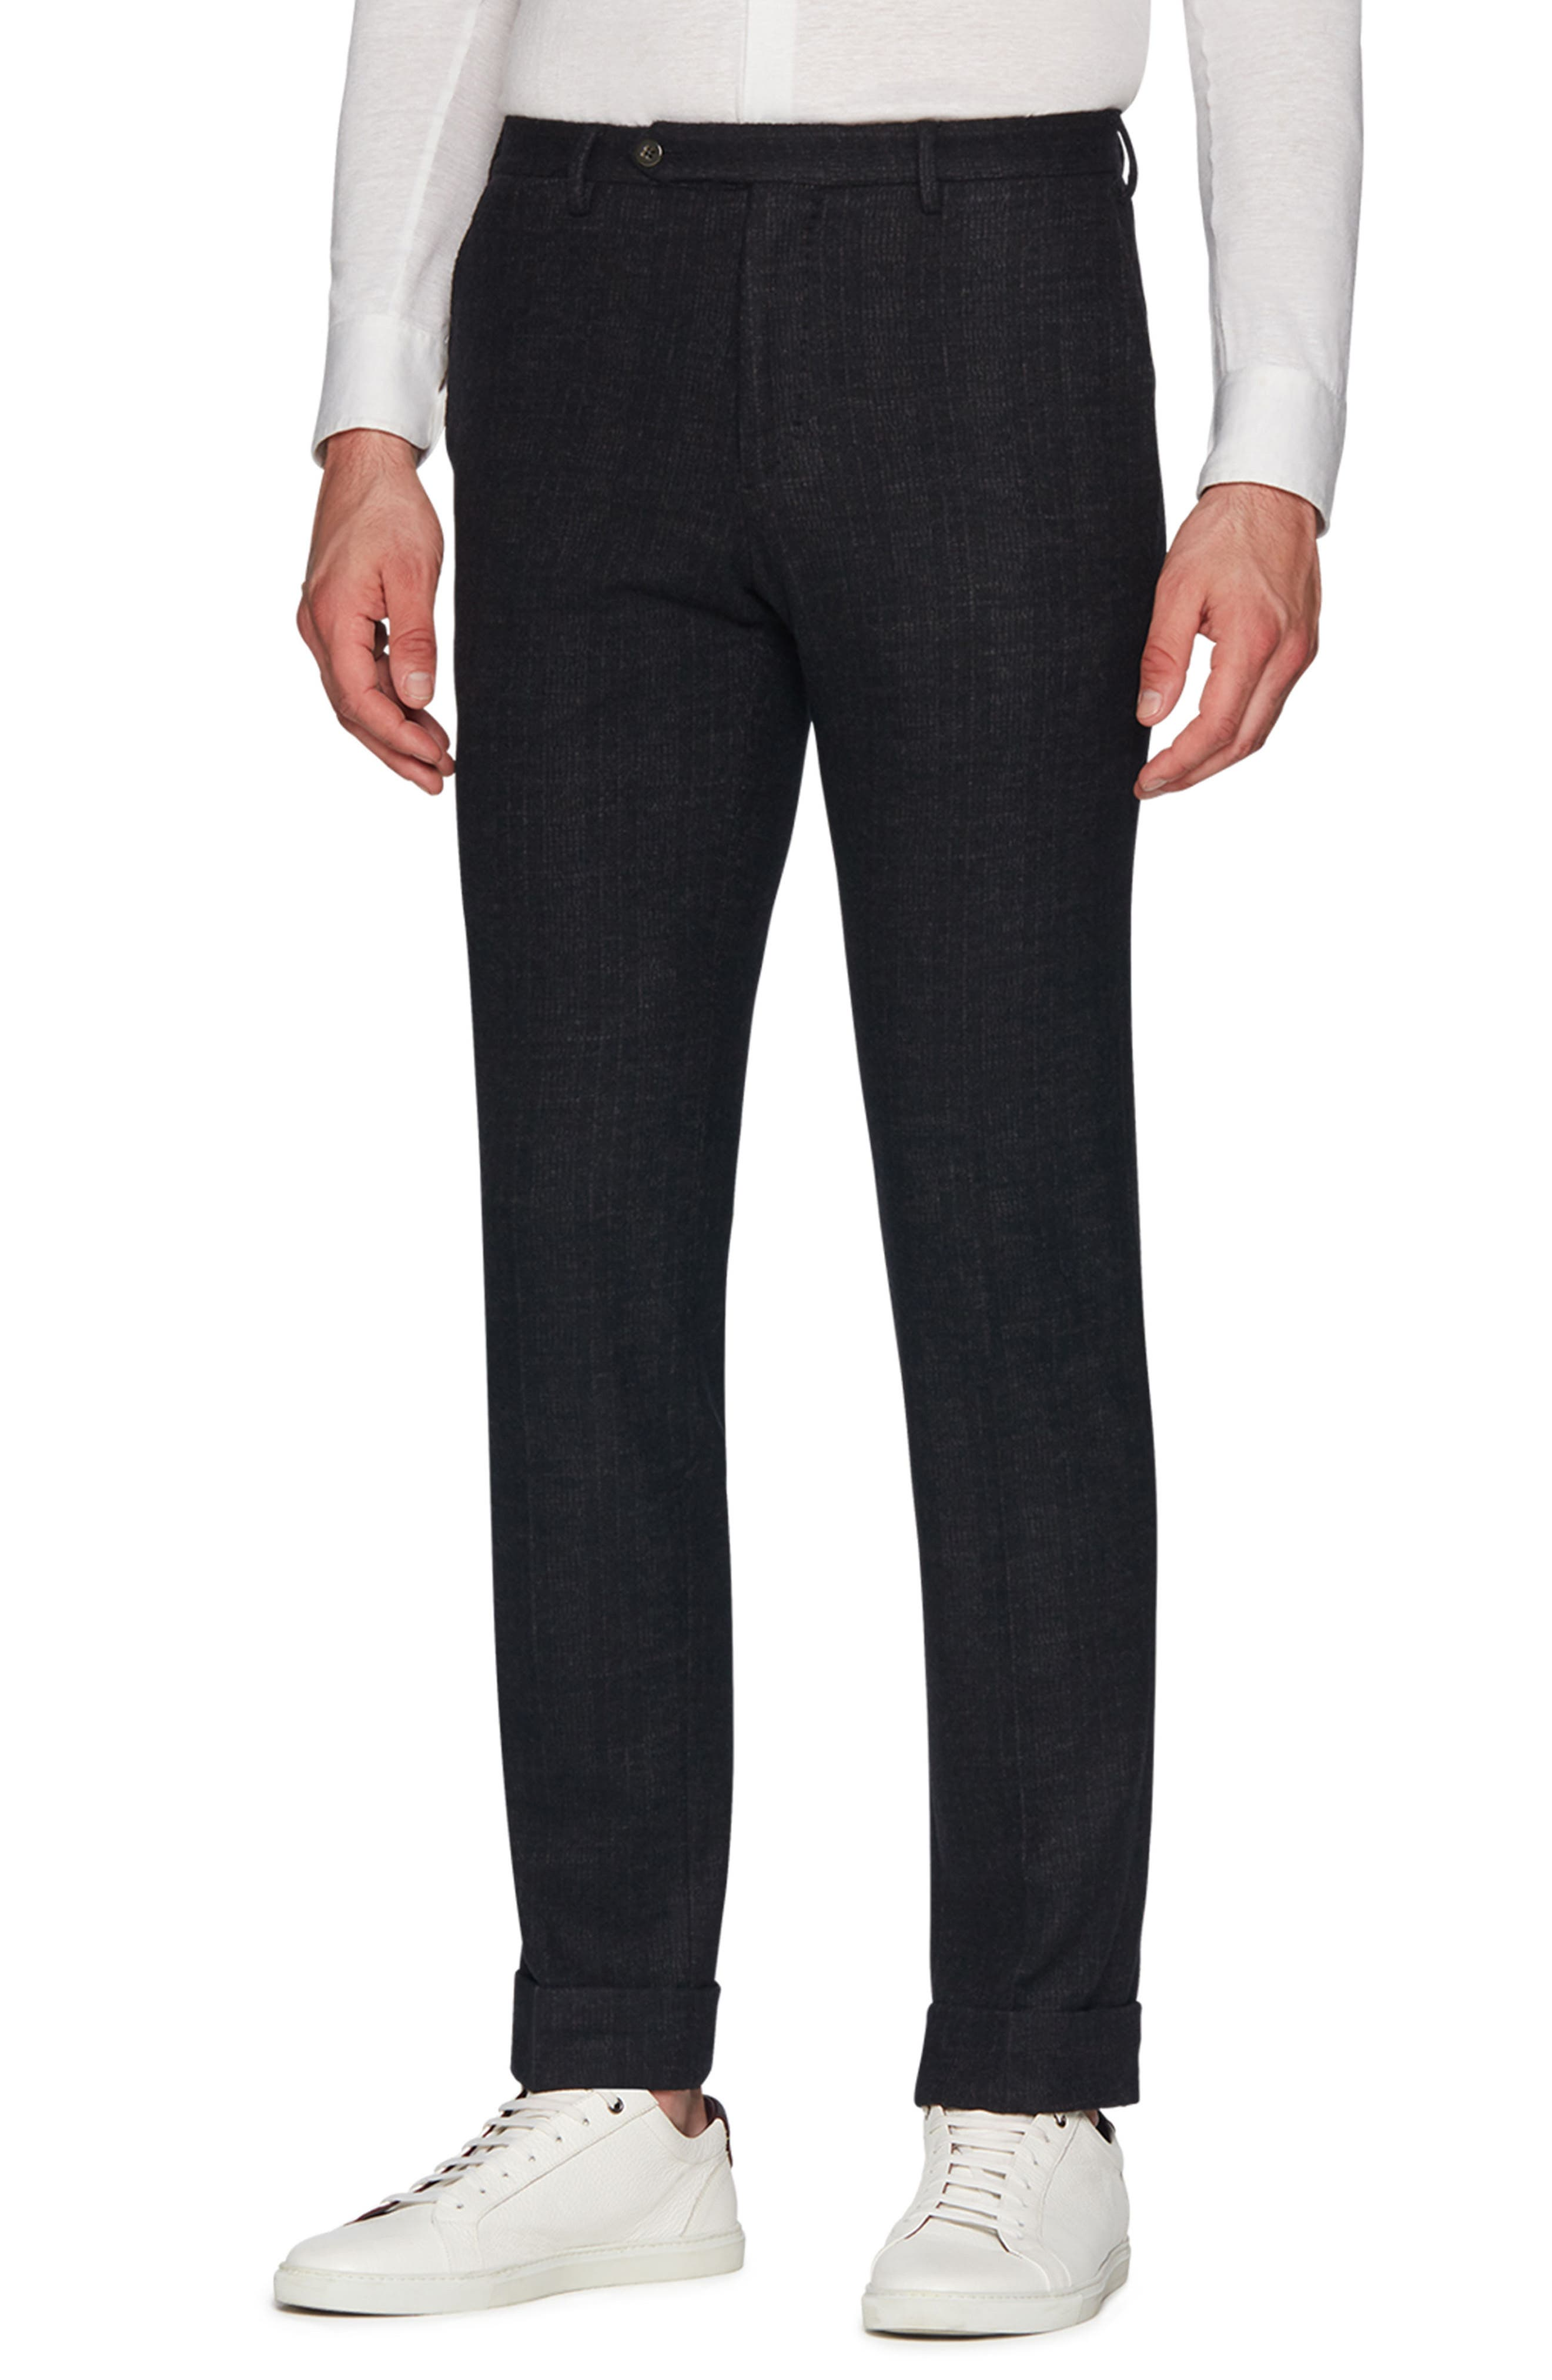 Josh Wool Blend Jersey Trousers,                         Main,                         color, CHARCOAL